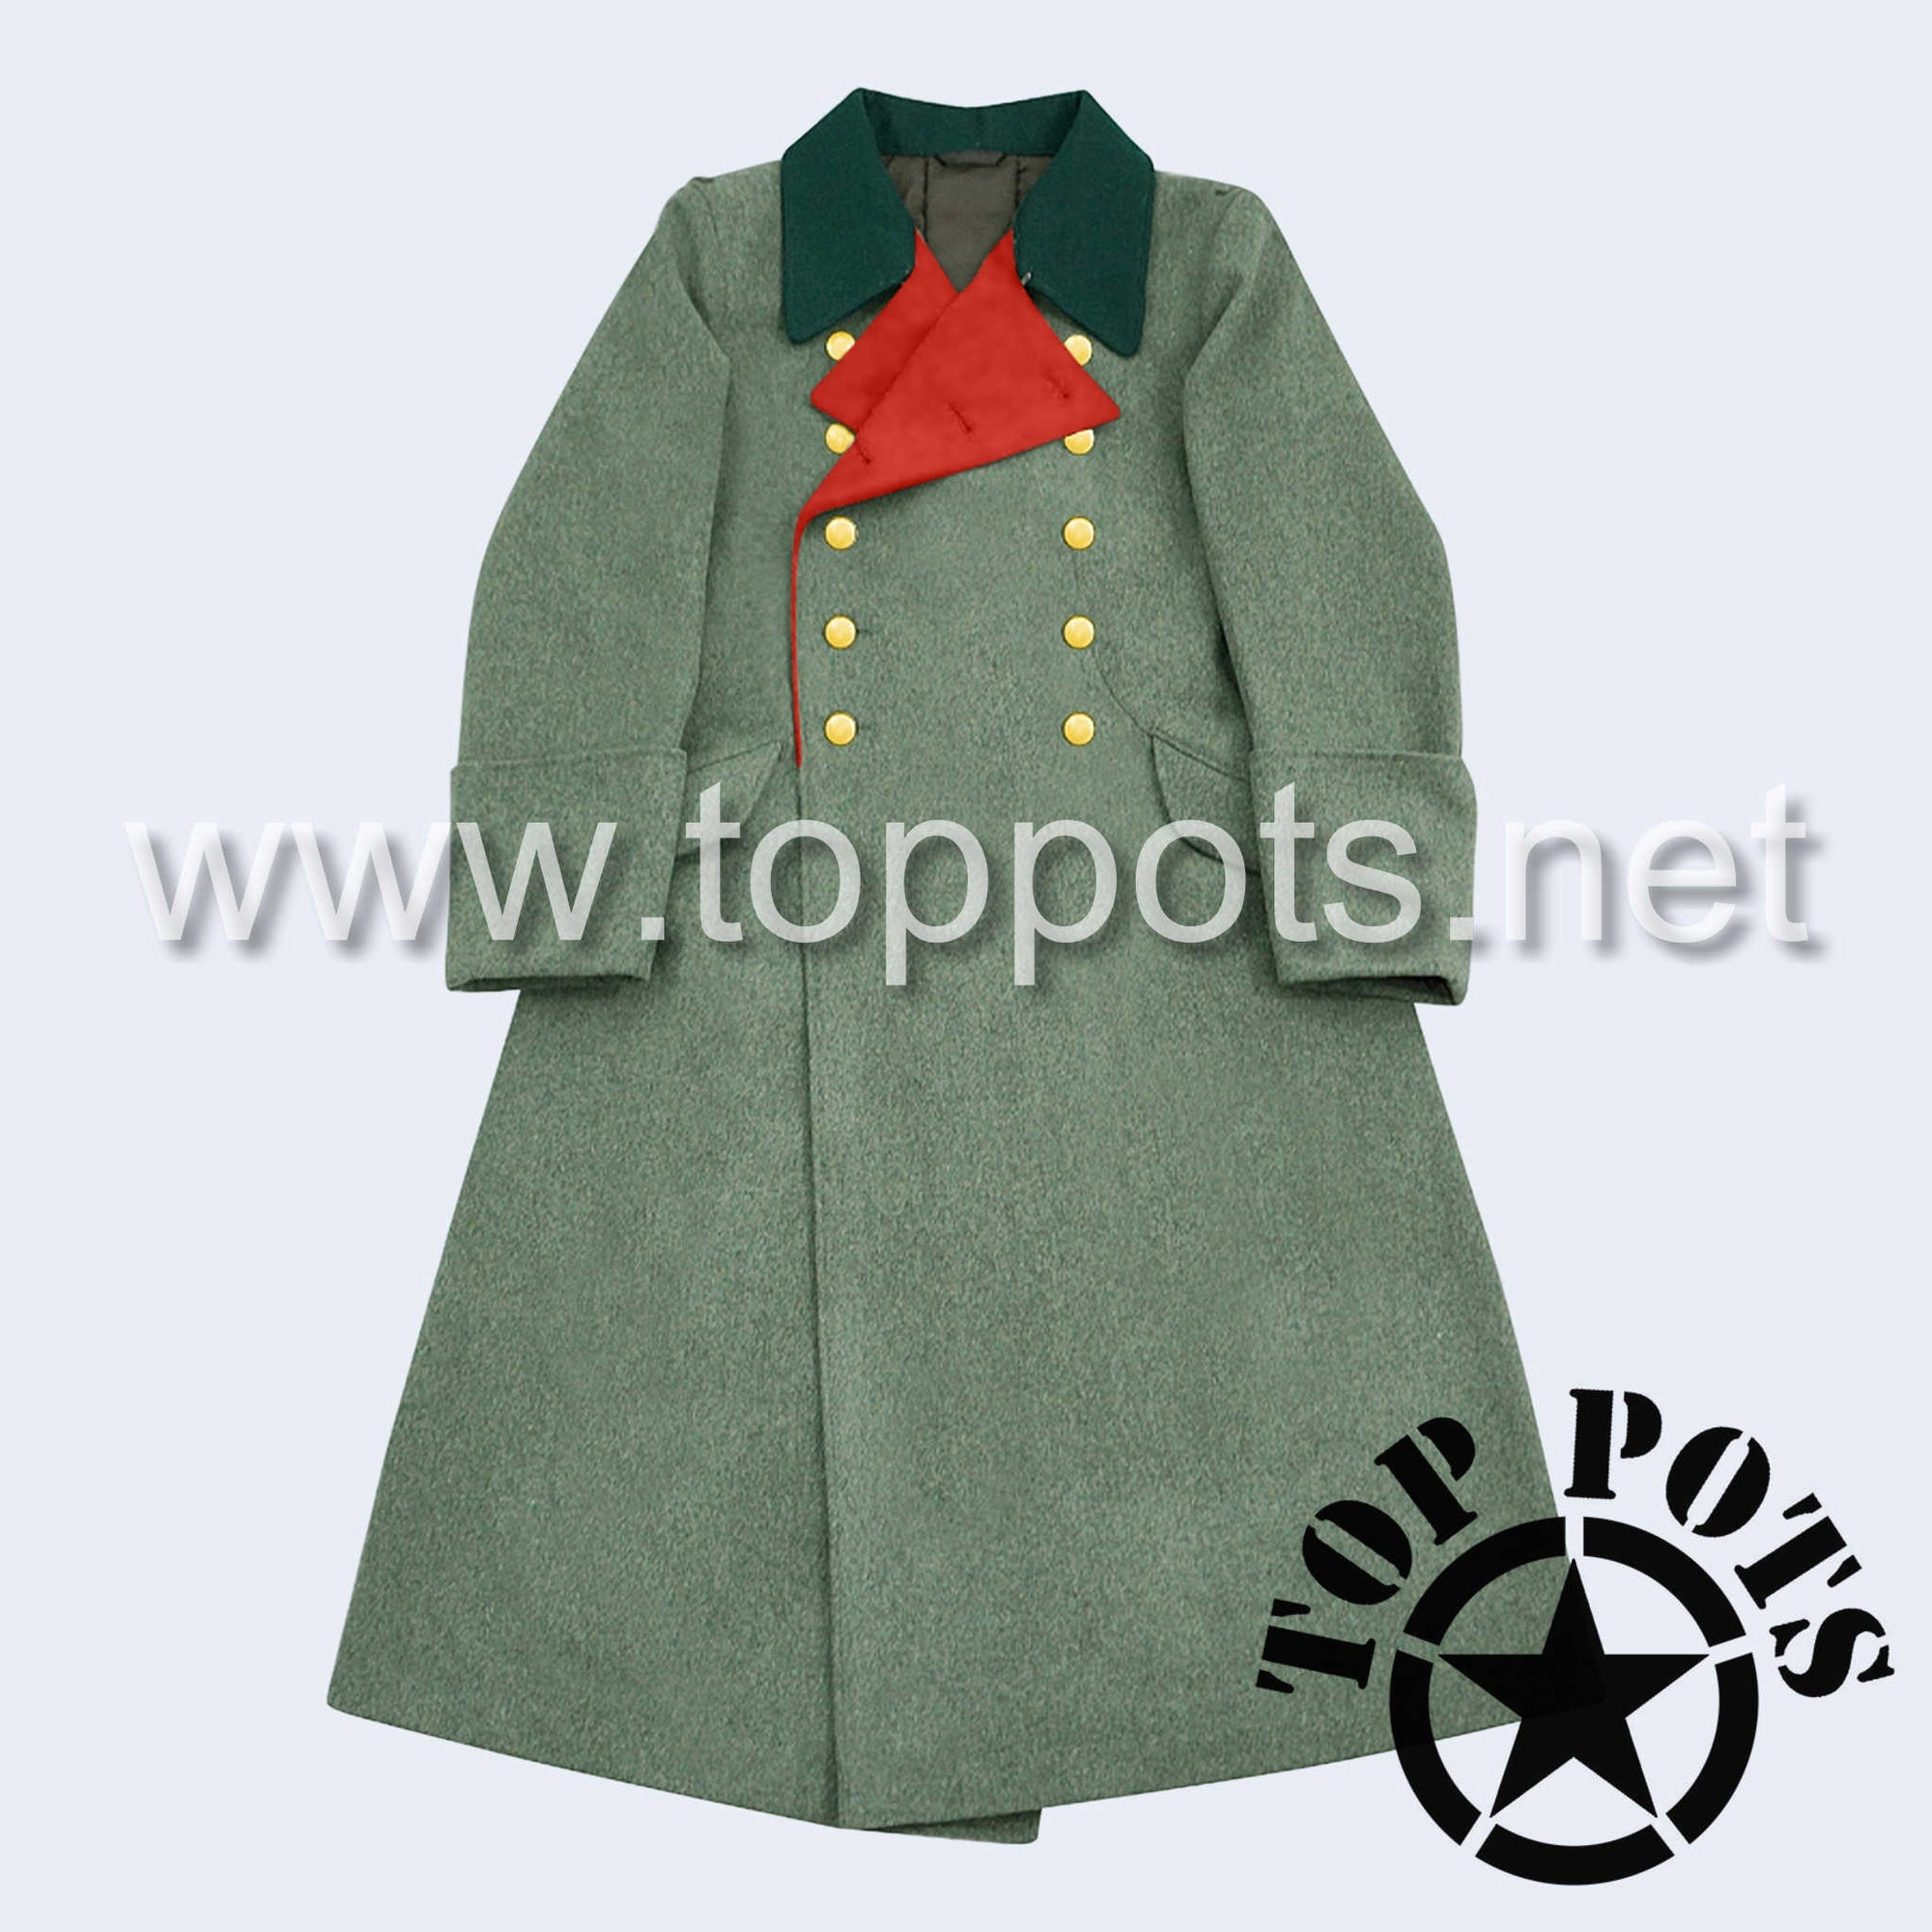 WWII German Army M1936 Waffen SS Uniform Overcoat Greatcoat Winter Jacket Field Grey Wool - General